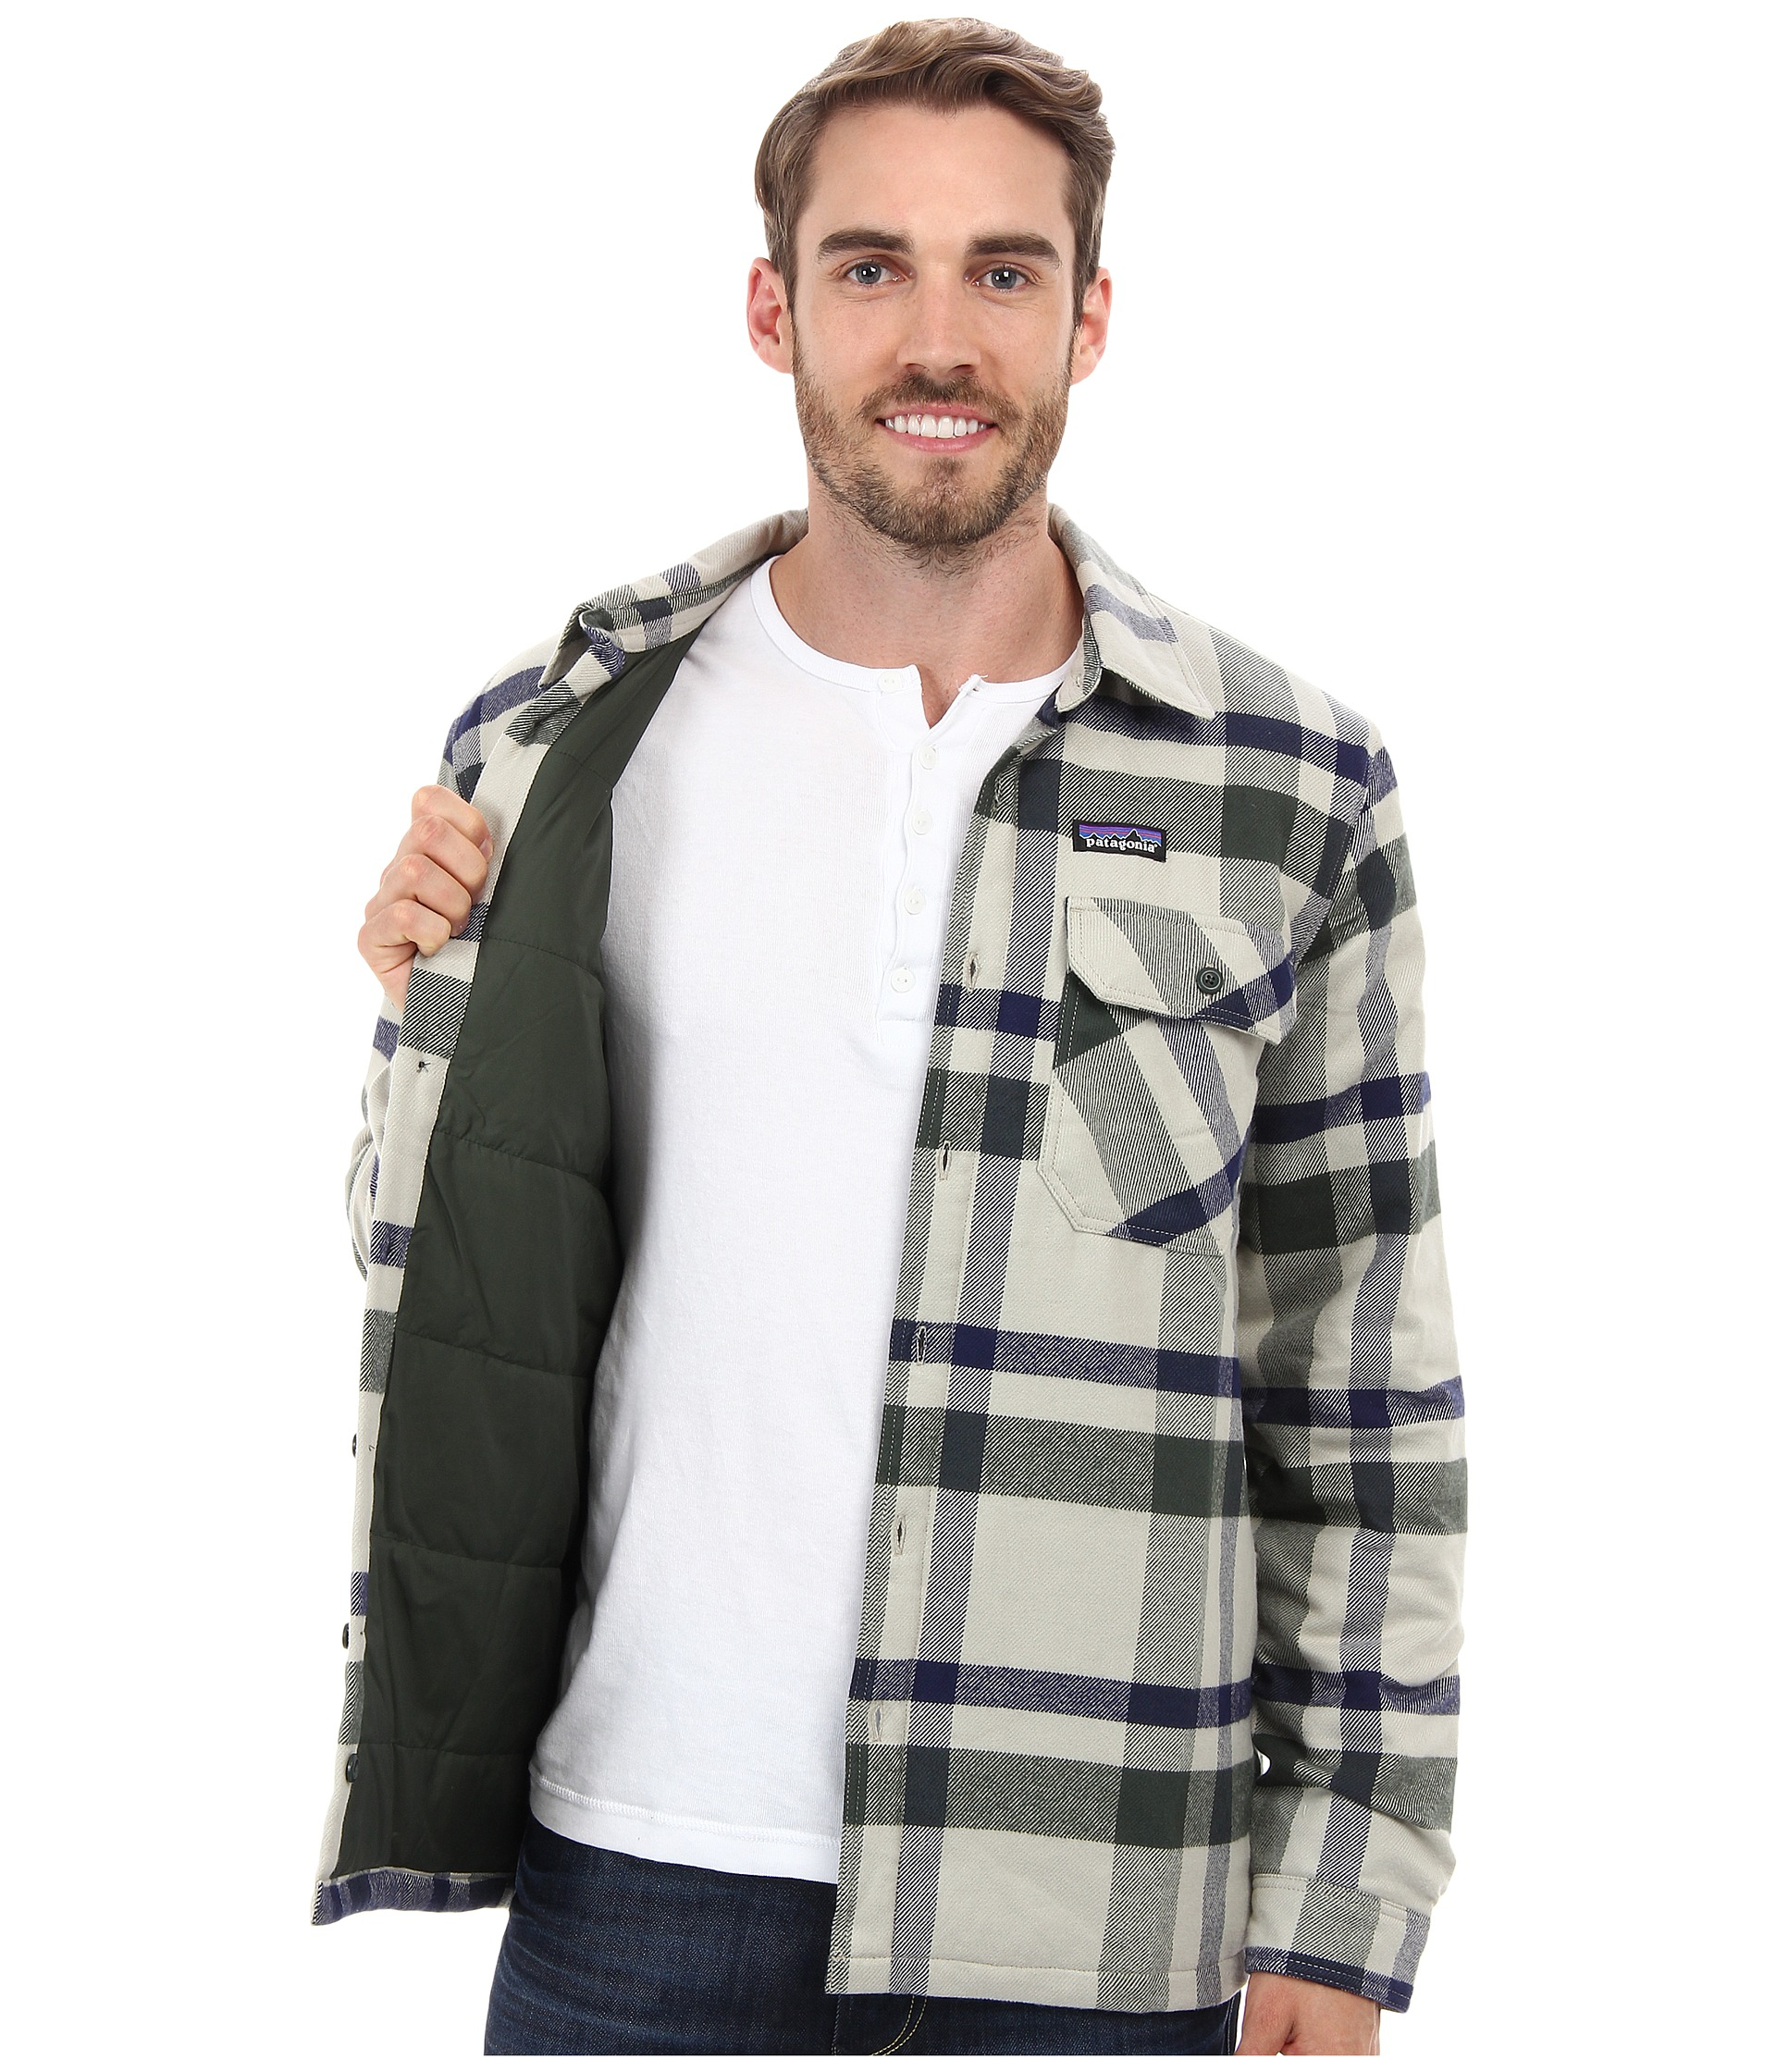 6359738efd7 Lyst - Patagonia Insulated Fjord Flannel Jacket in Gray for Men